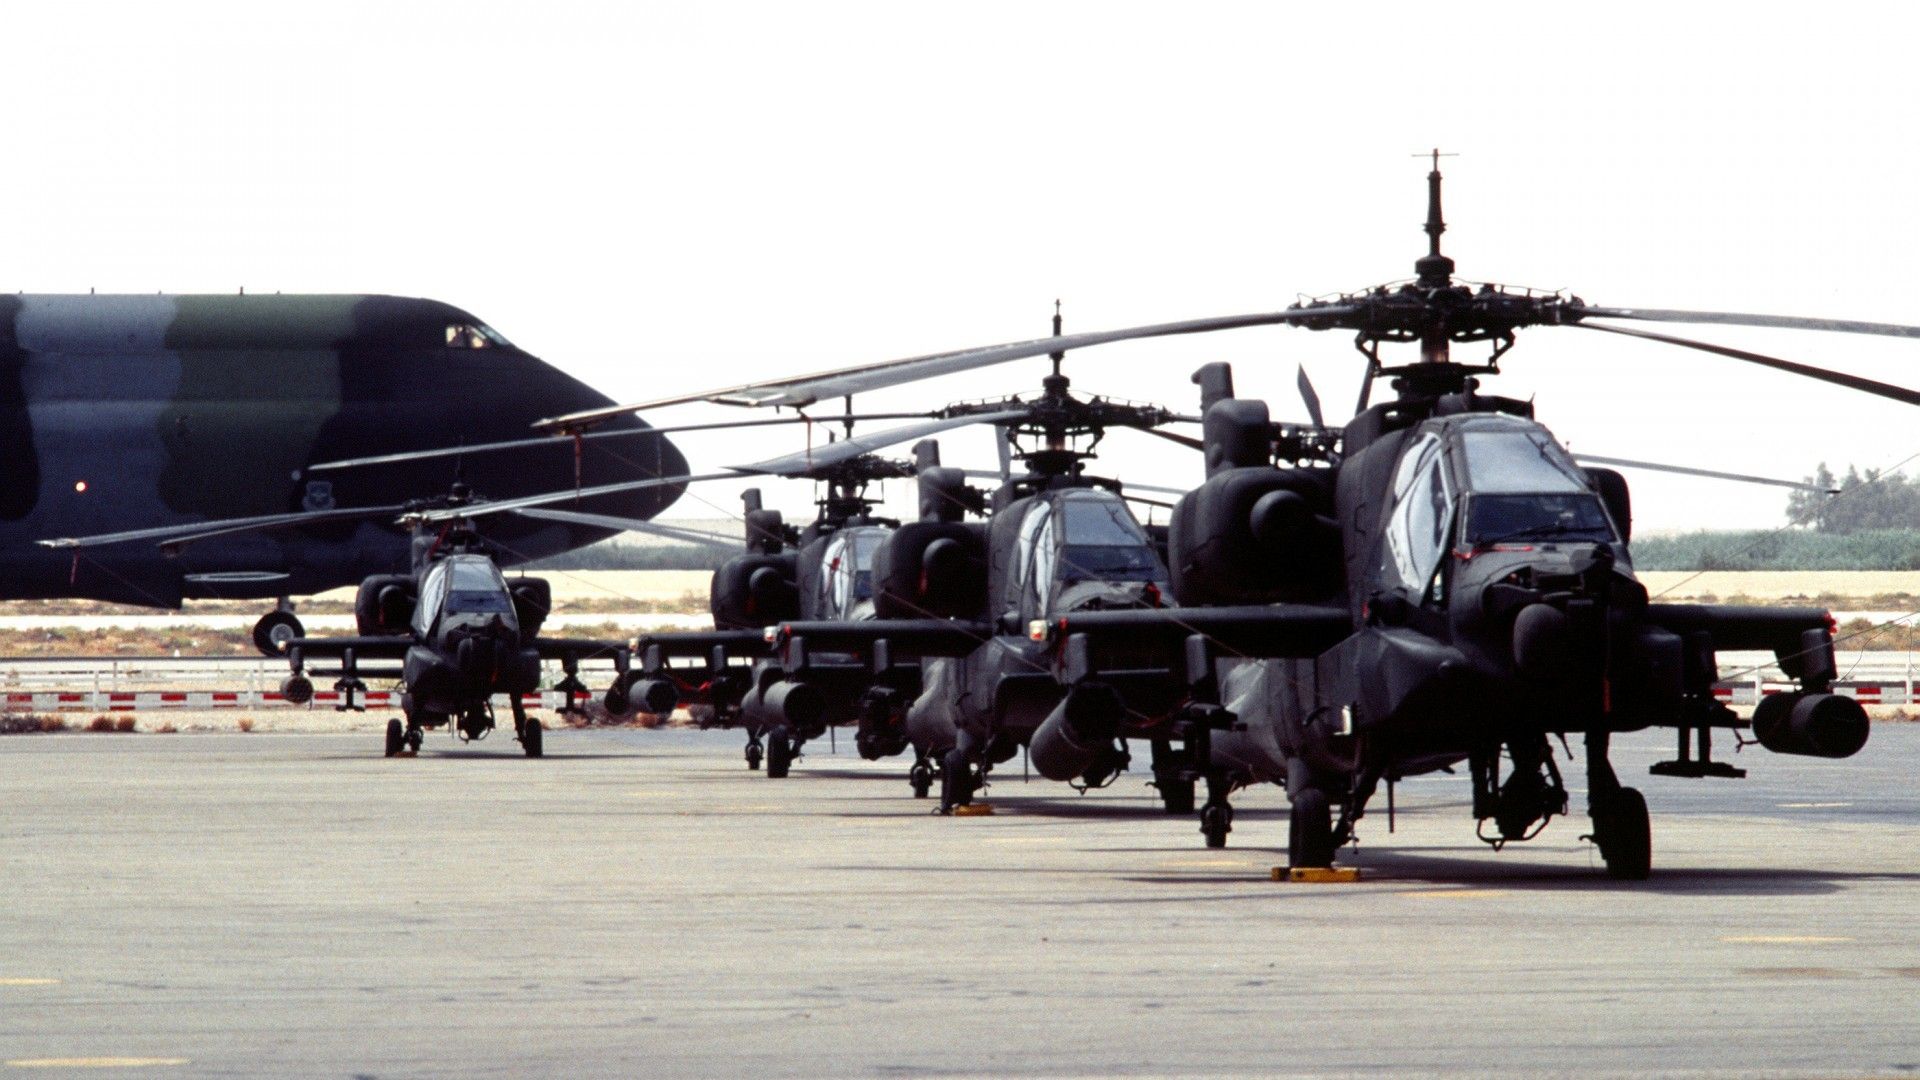 Helicopter Full Hd Wallpaper Apache Helicopter Wallpaper 183 ①